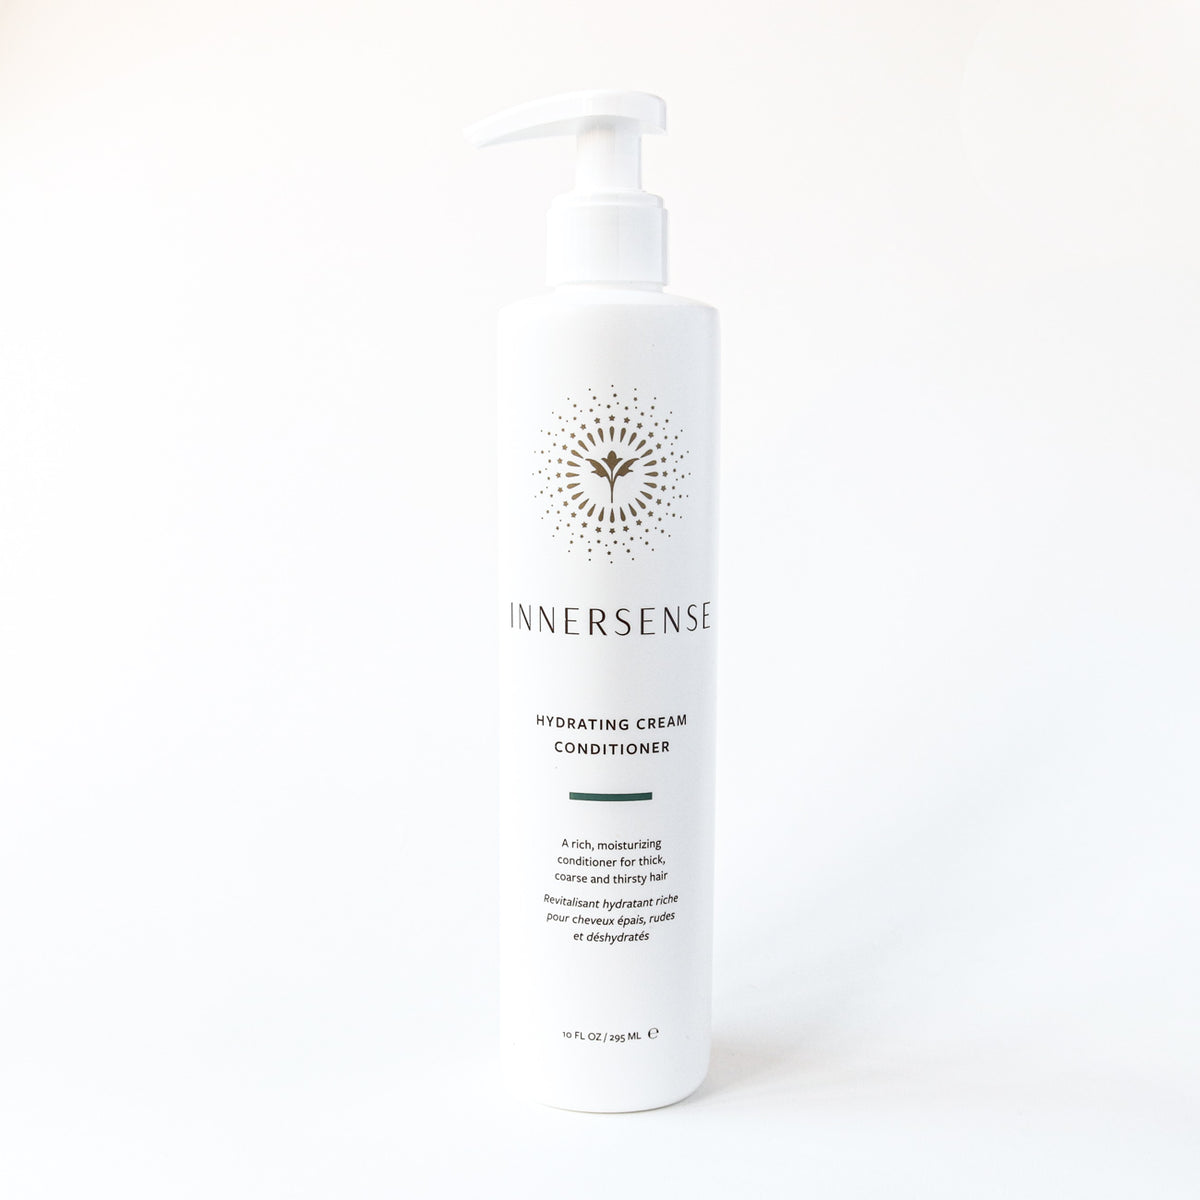 Hydrating Cream Conditioner